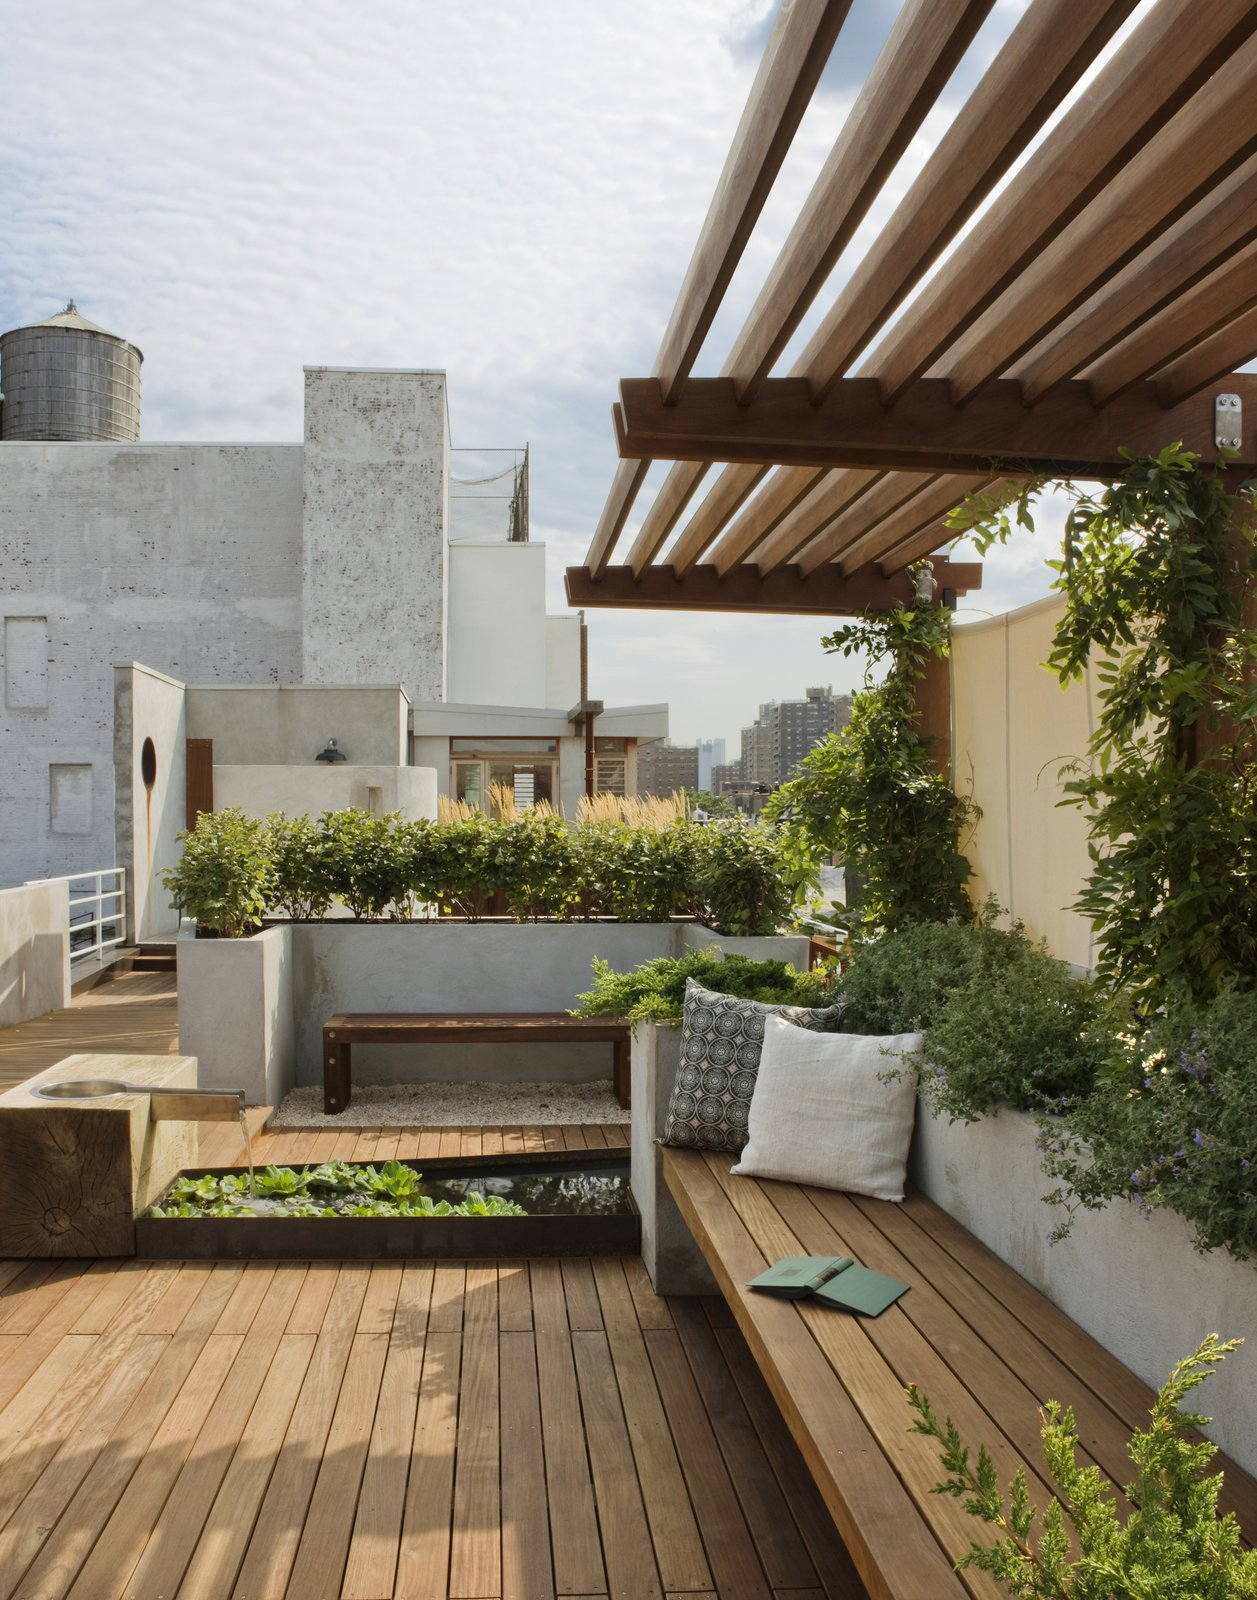 A view looking south toward the penthouse addition.  The pergola is planted with wisteria providing a welcoming shade.